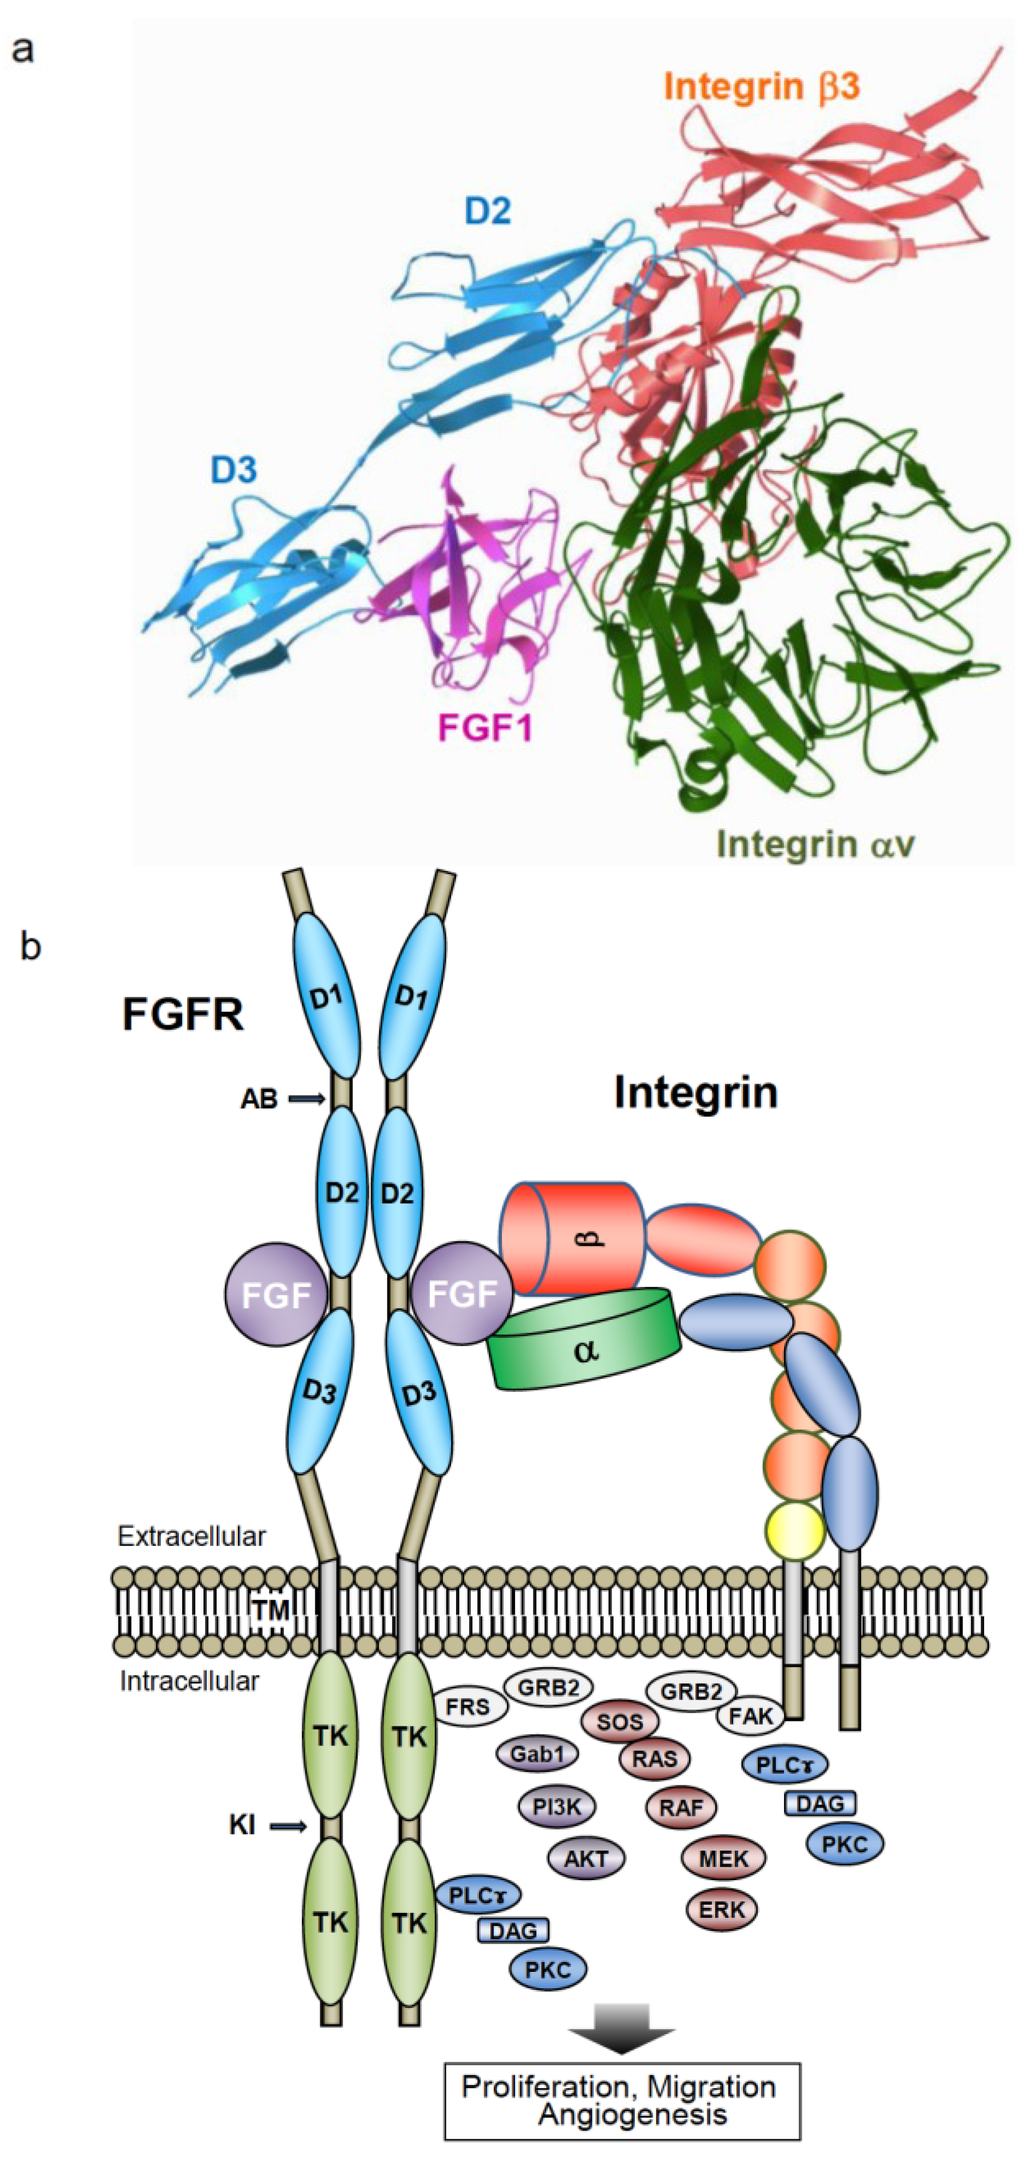 Crosstalk between Fibroblast Growth Factor (FGF) Receptor and Integrin through Direct Integrin Binding to FGF and Resulting Integrin-FGF-FGFR Ternary Complex FormationAbstract Share & Cite This ArticleRelated ArticlesArticle MetricsArticle Access StatisticsCommentsCitations